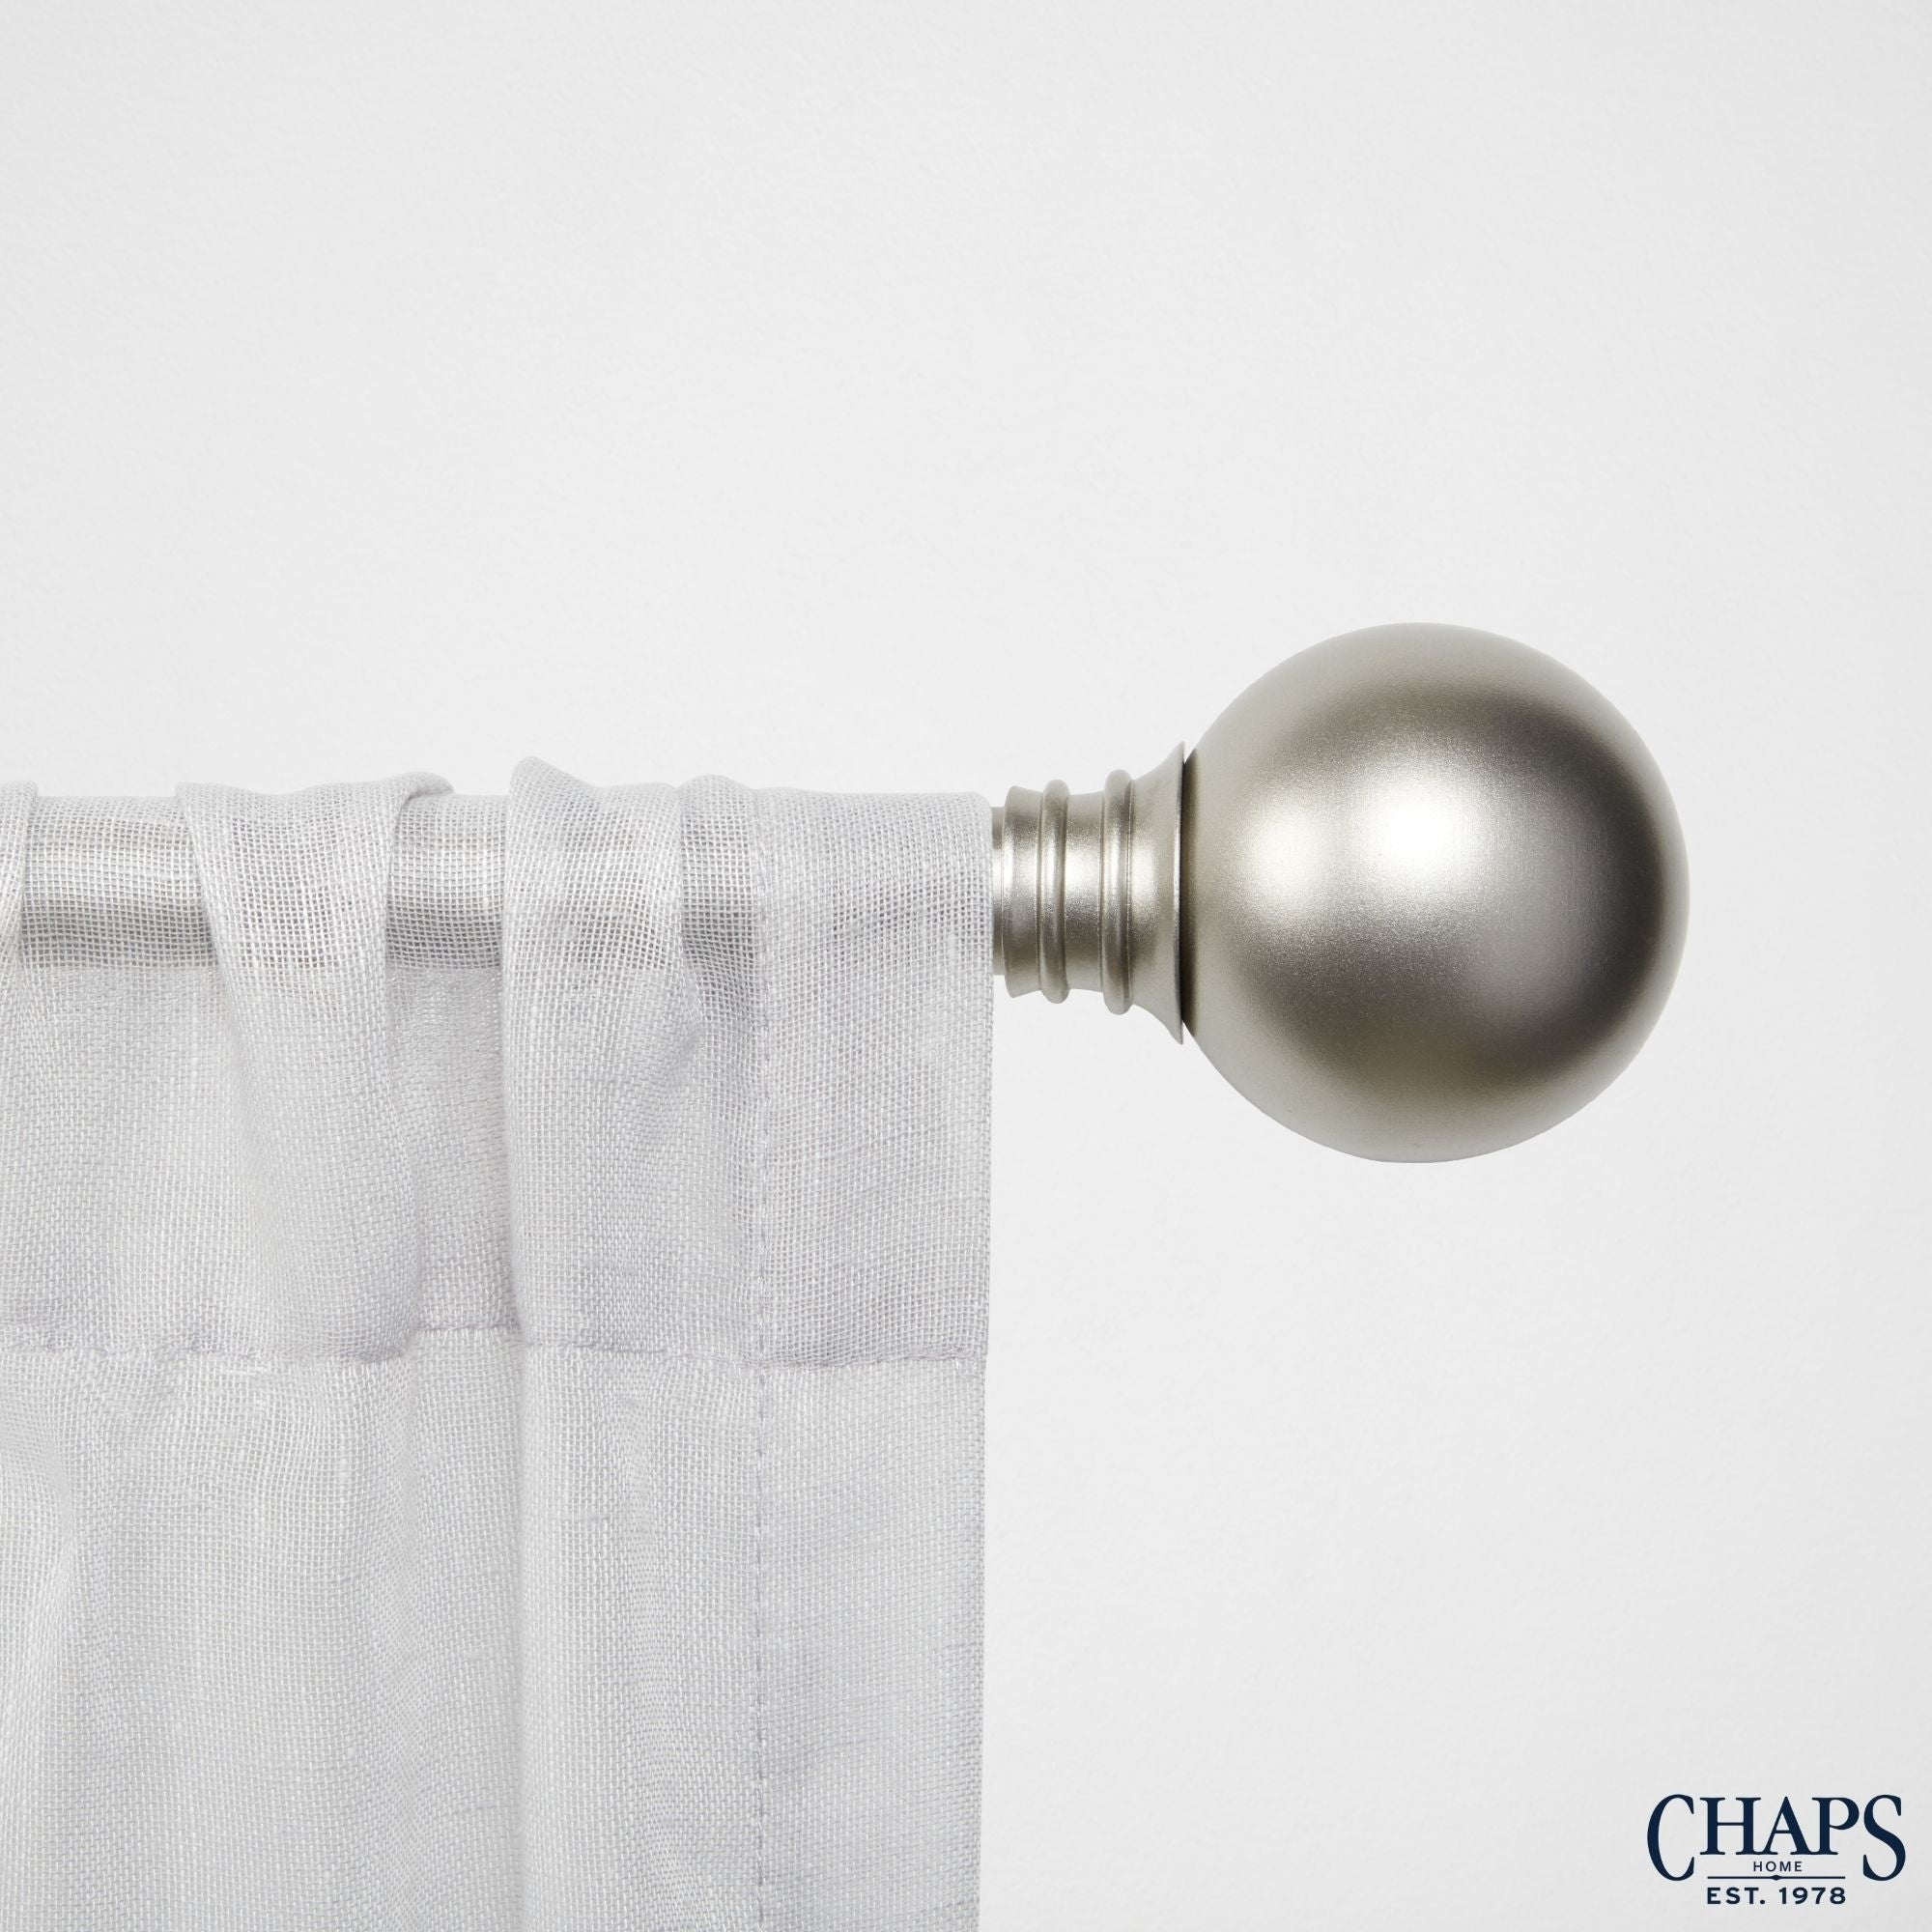 36-72 Chaps Rings 1 Window Curtain Rod and Finial Set Gold